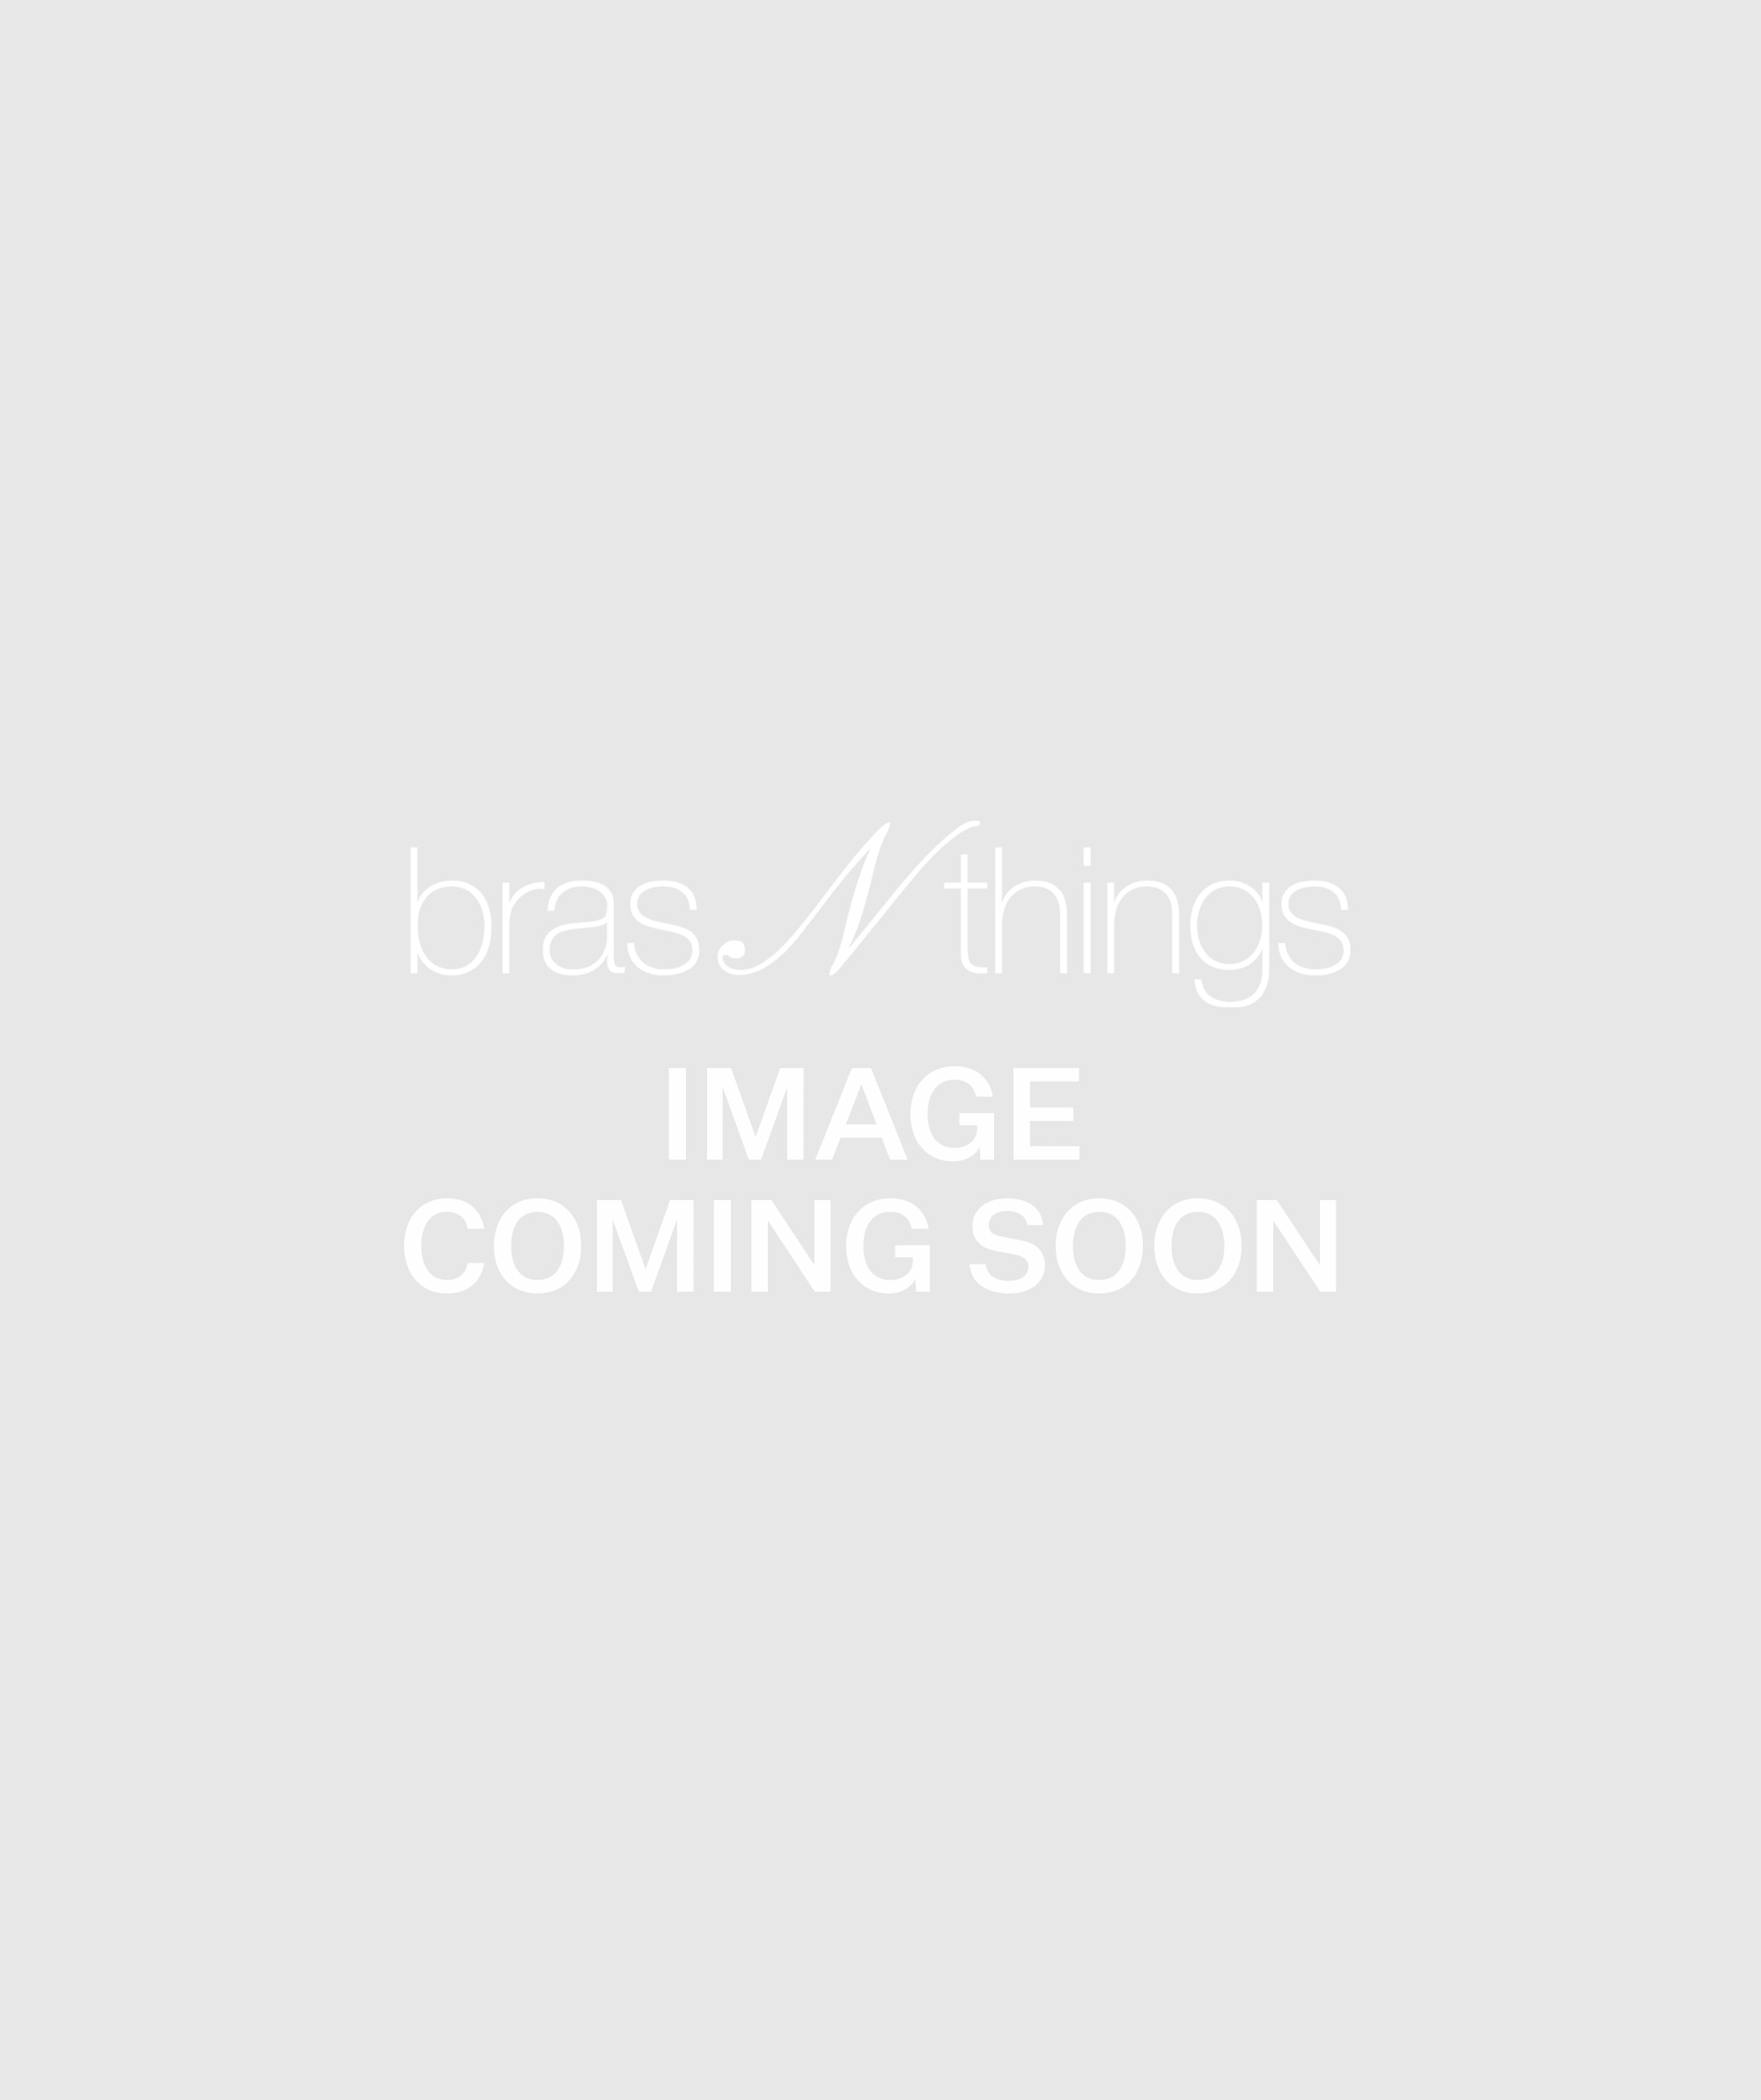 Body Bliss Full Figure Bra - Nude